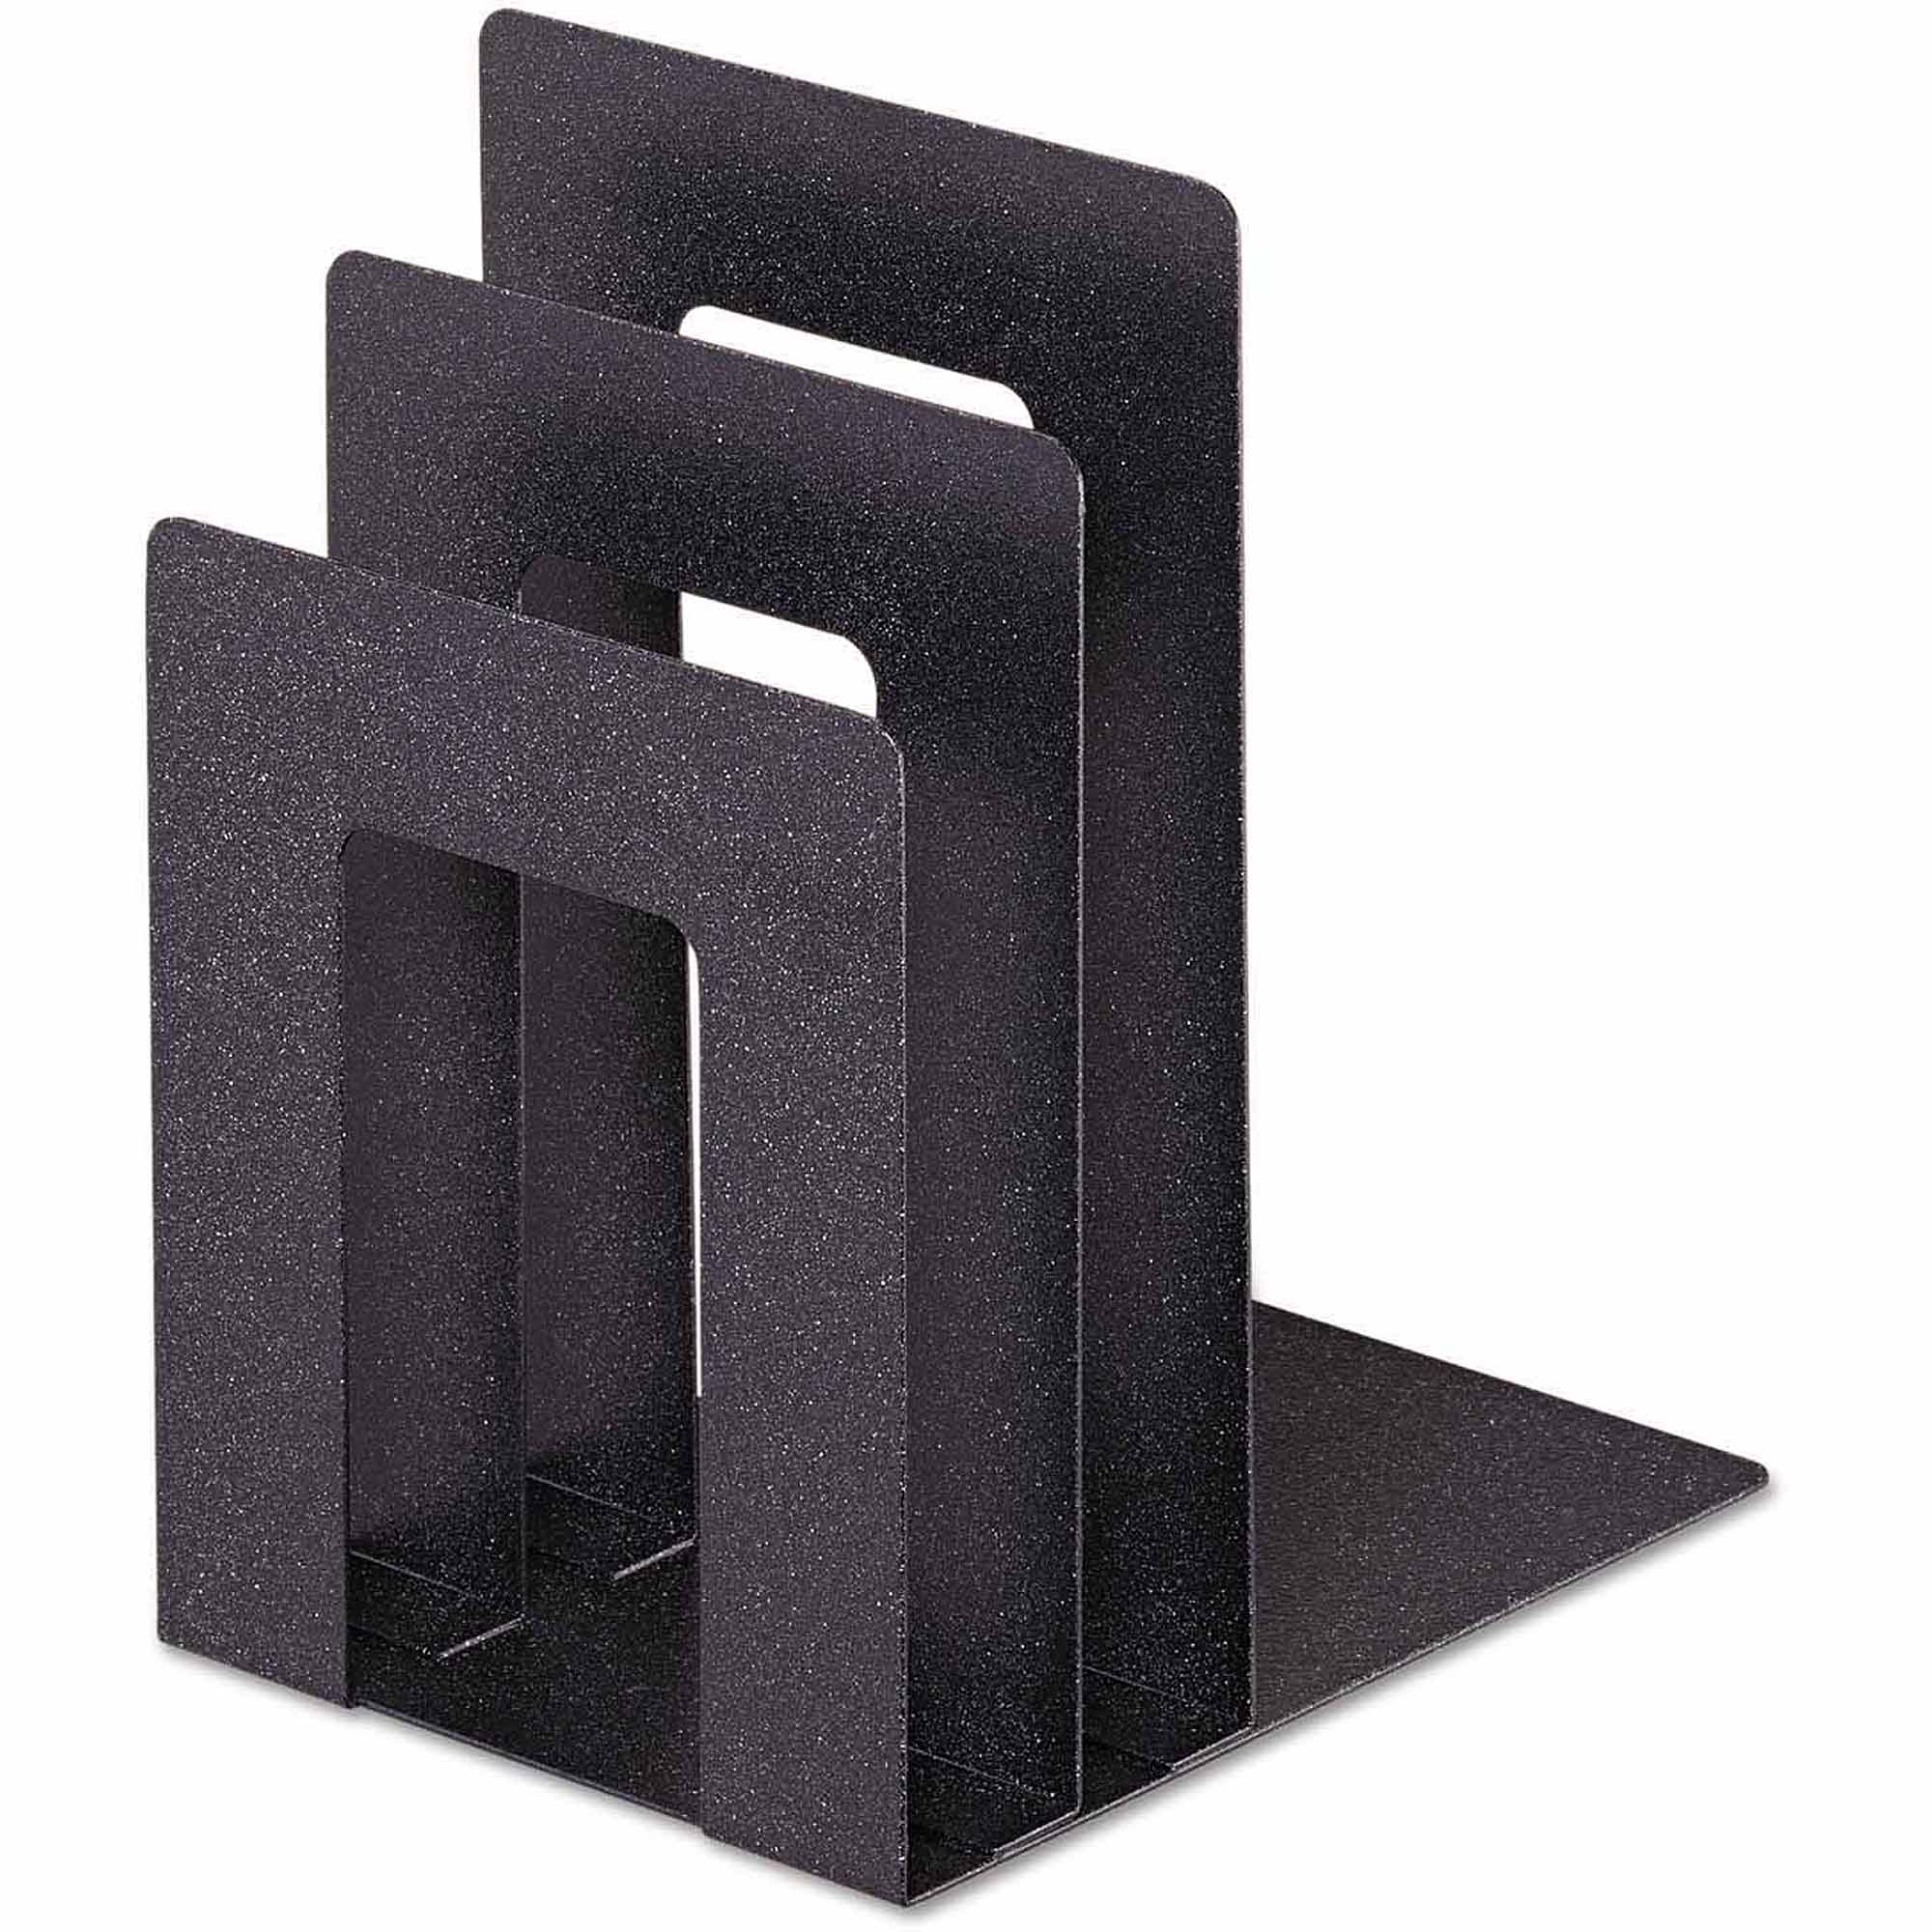 "SteelMaster Soho Bookend with Squared Corners, 5"" x 7"" x 8"", Granite"